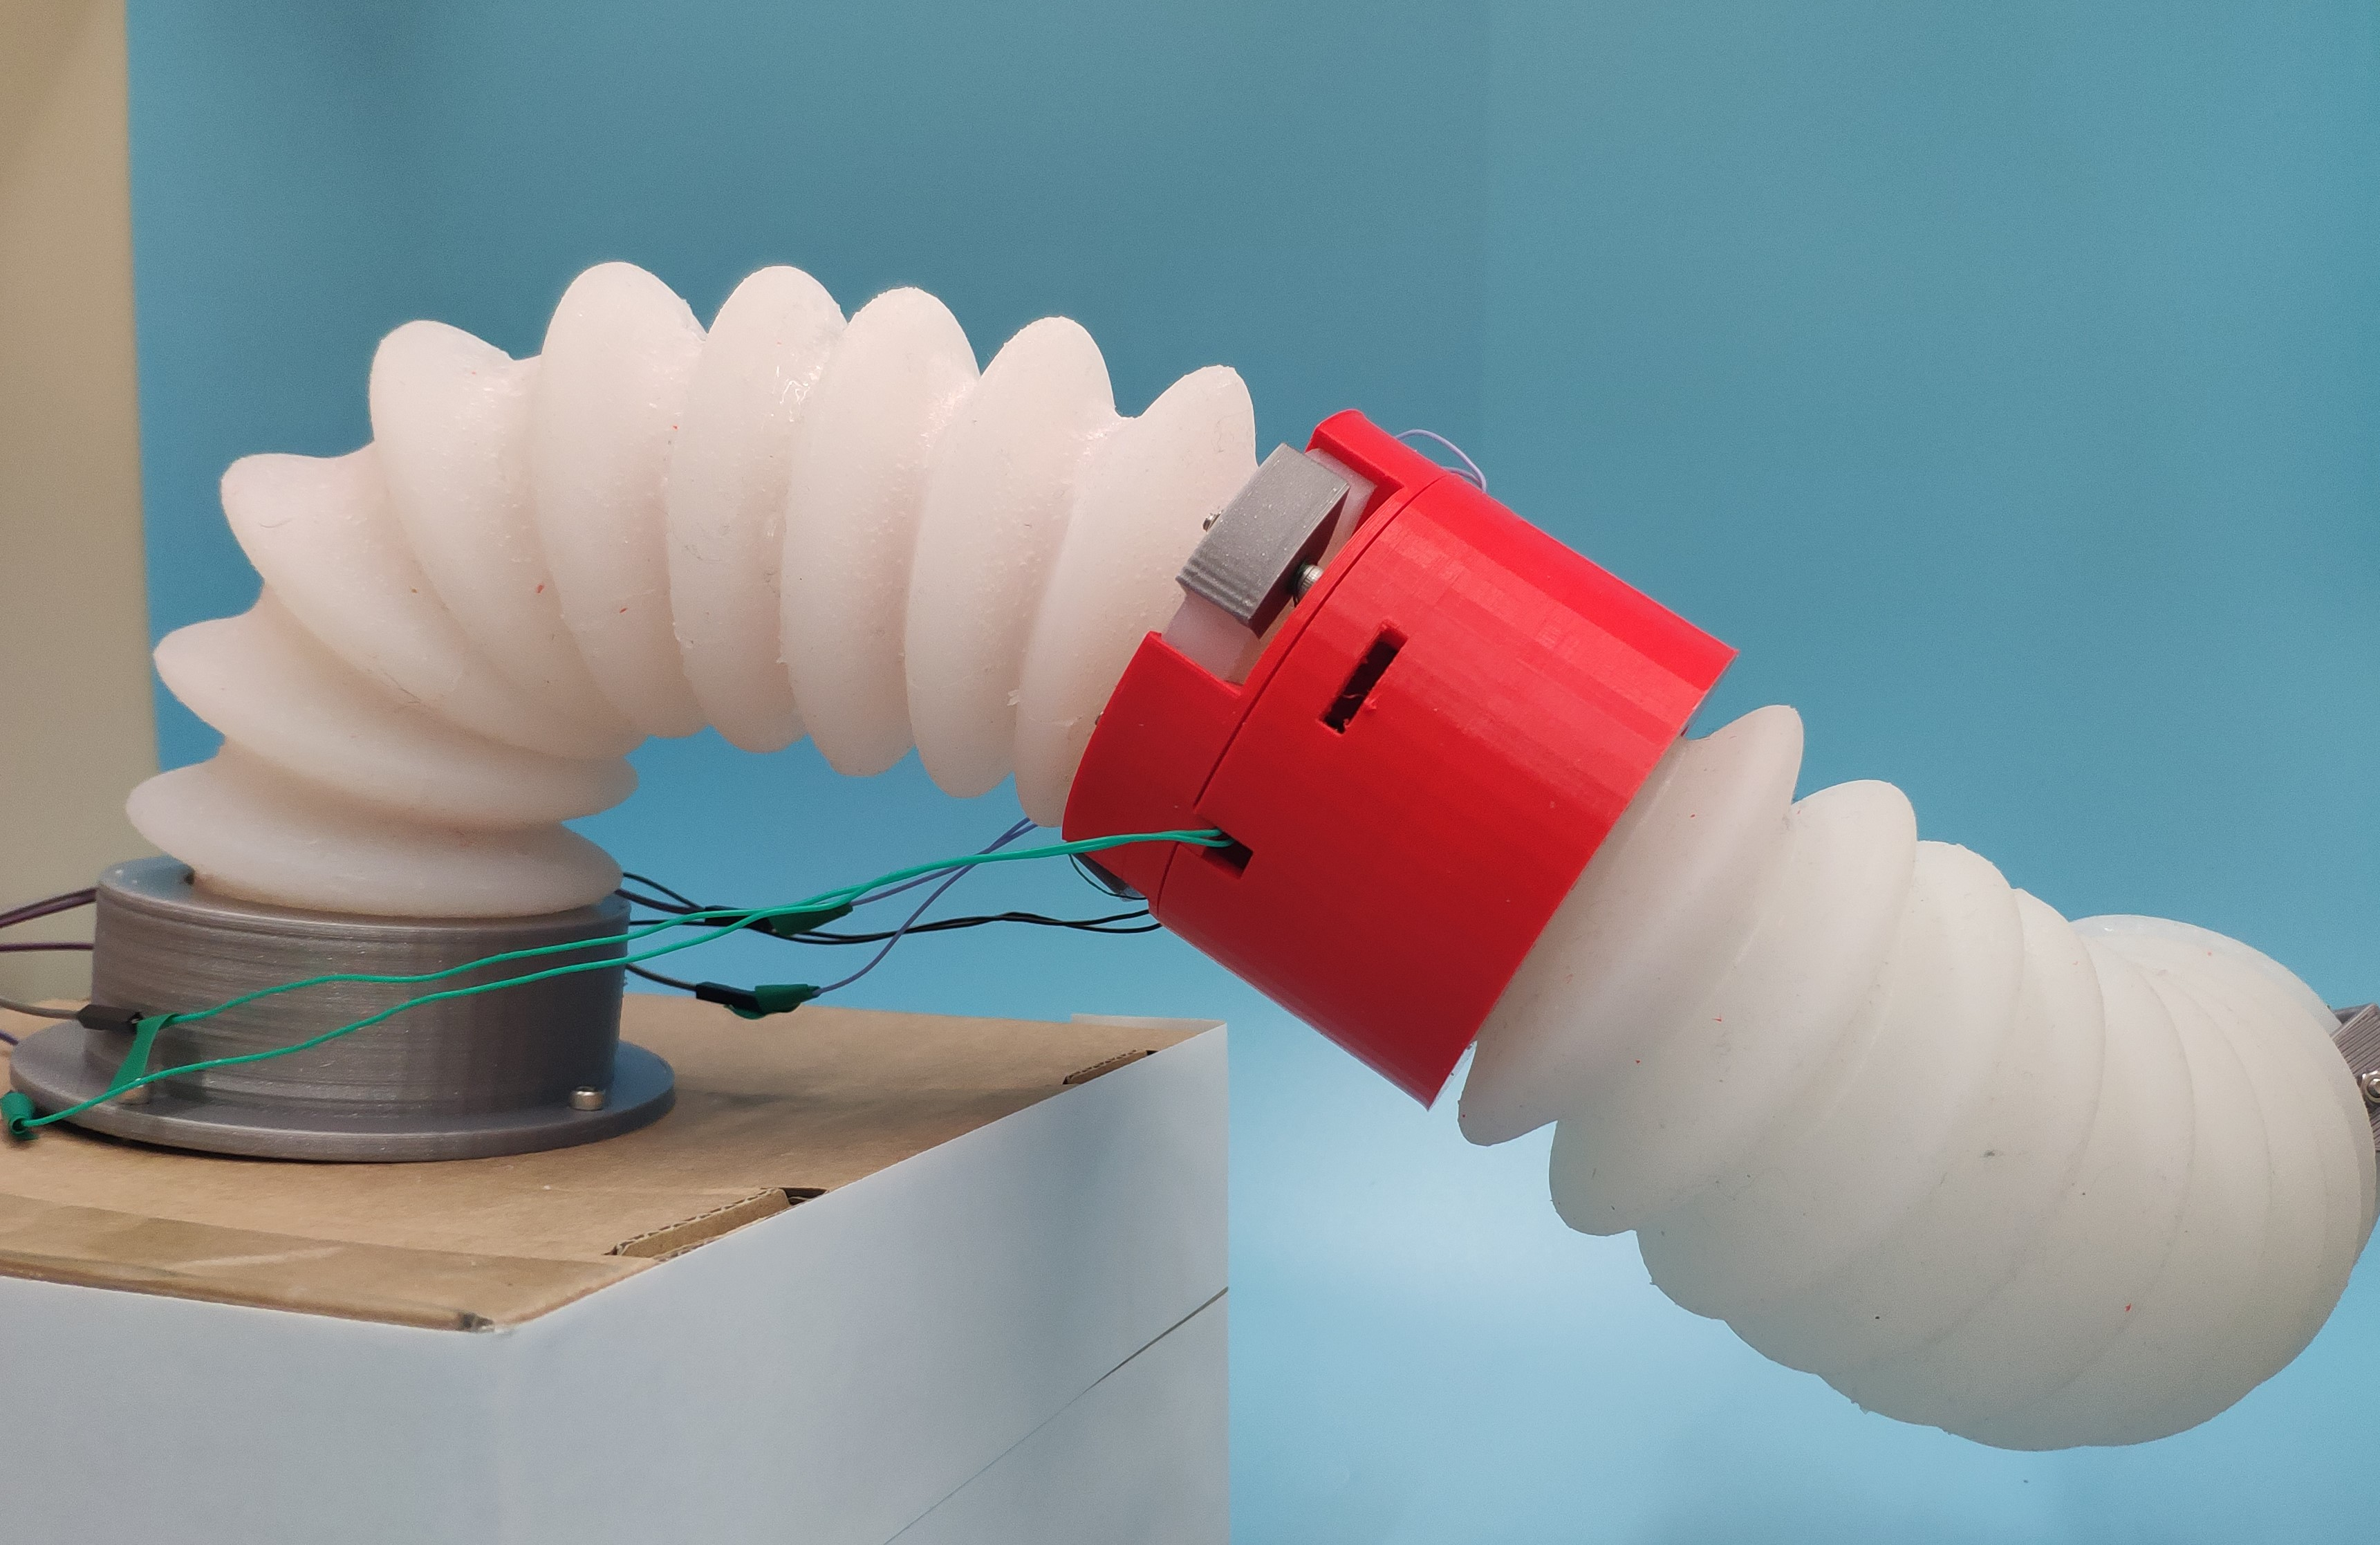 This photo shows an example of a robotic soft arm, built from two flexible white segments connected at a red elbow